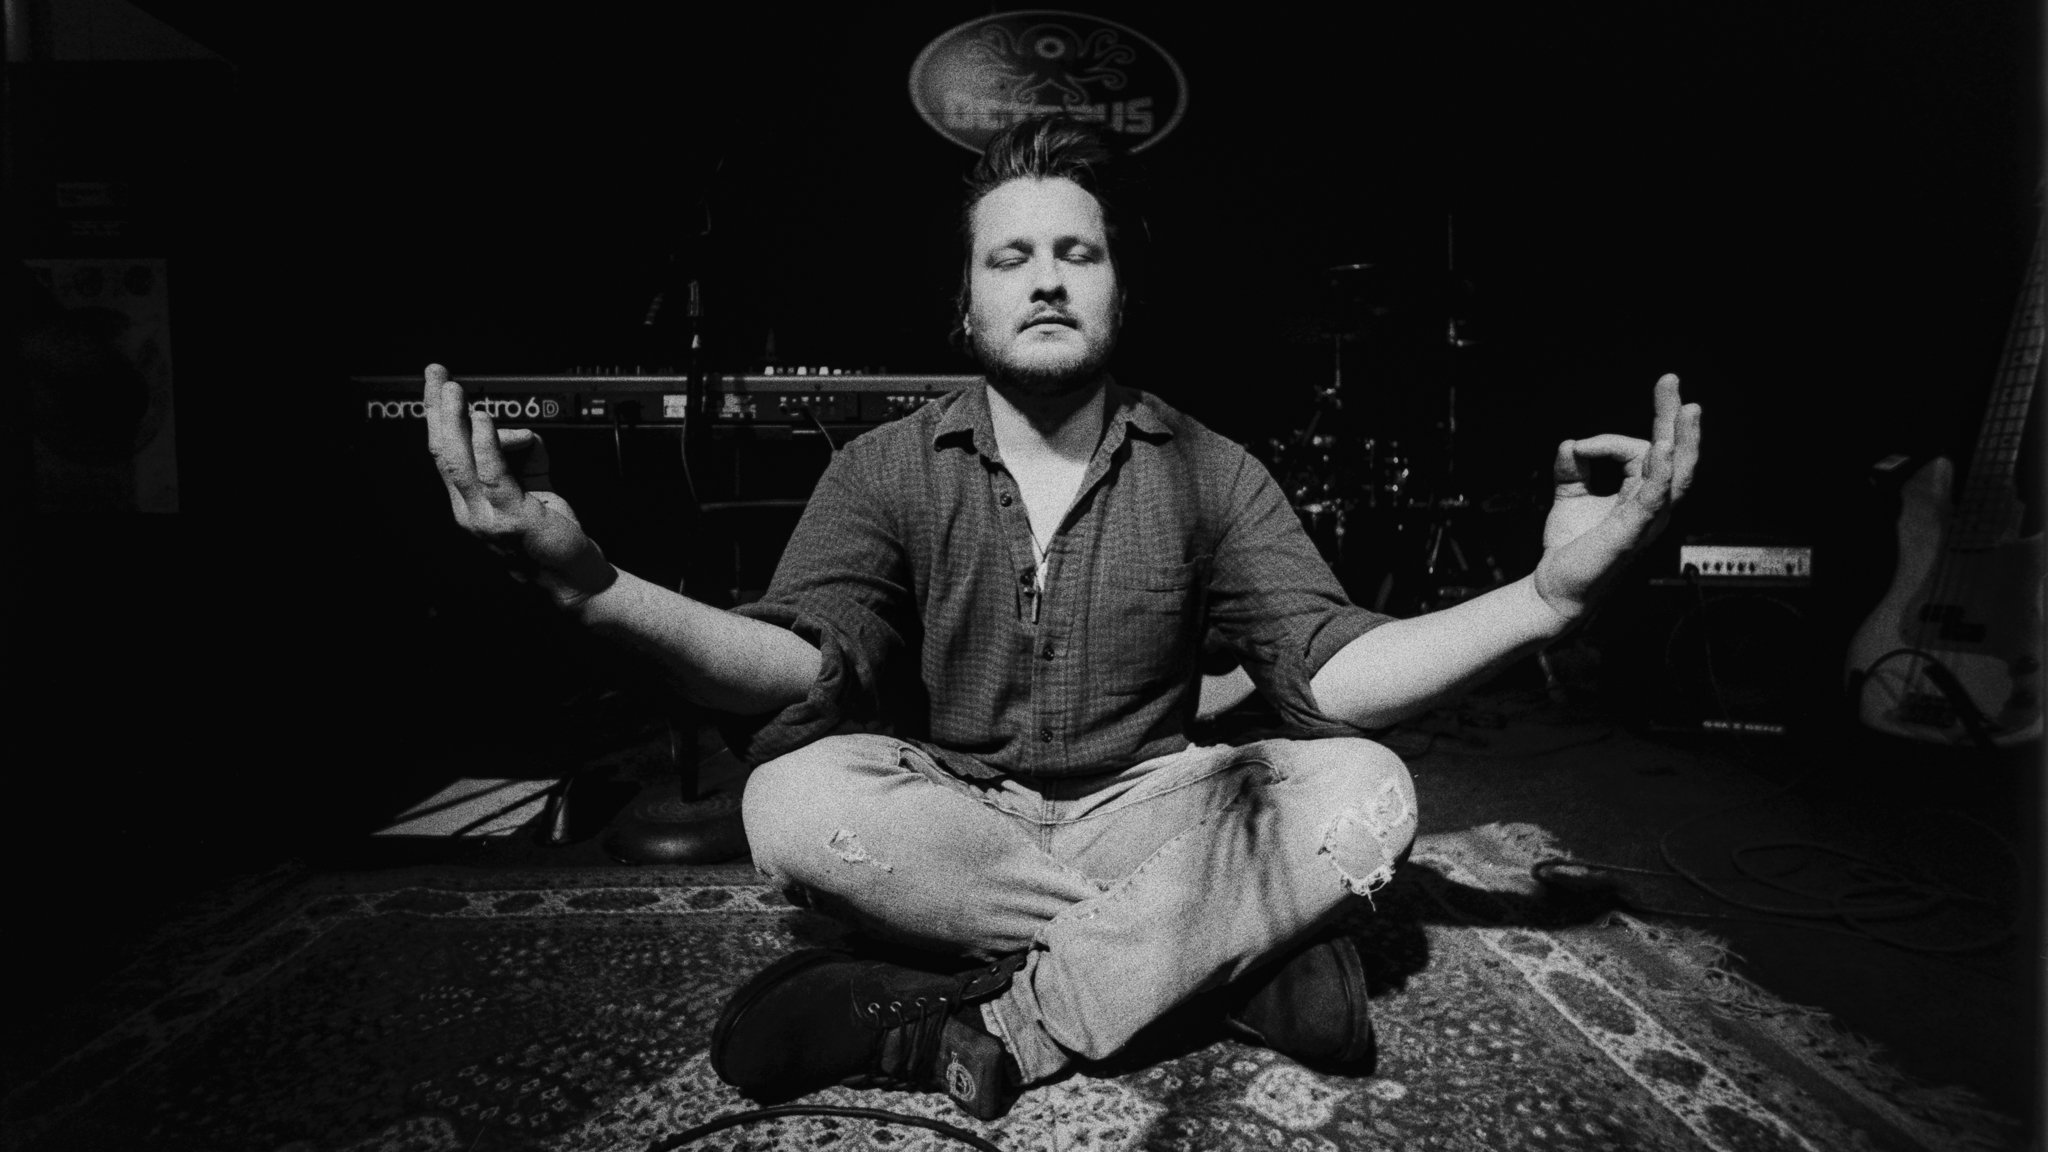 Eric Paul meditating before the show at The Octopus in Cedar Falls, Iowa